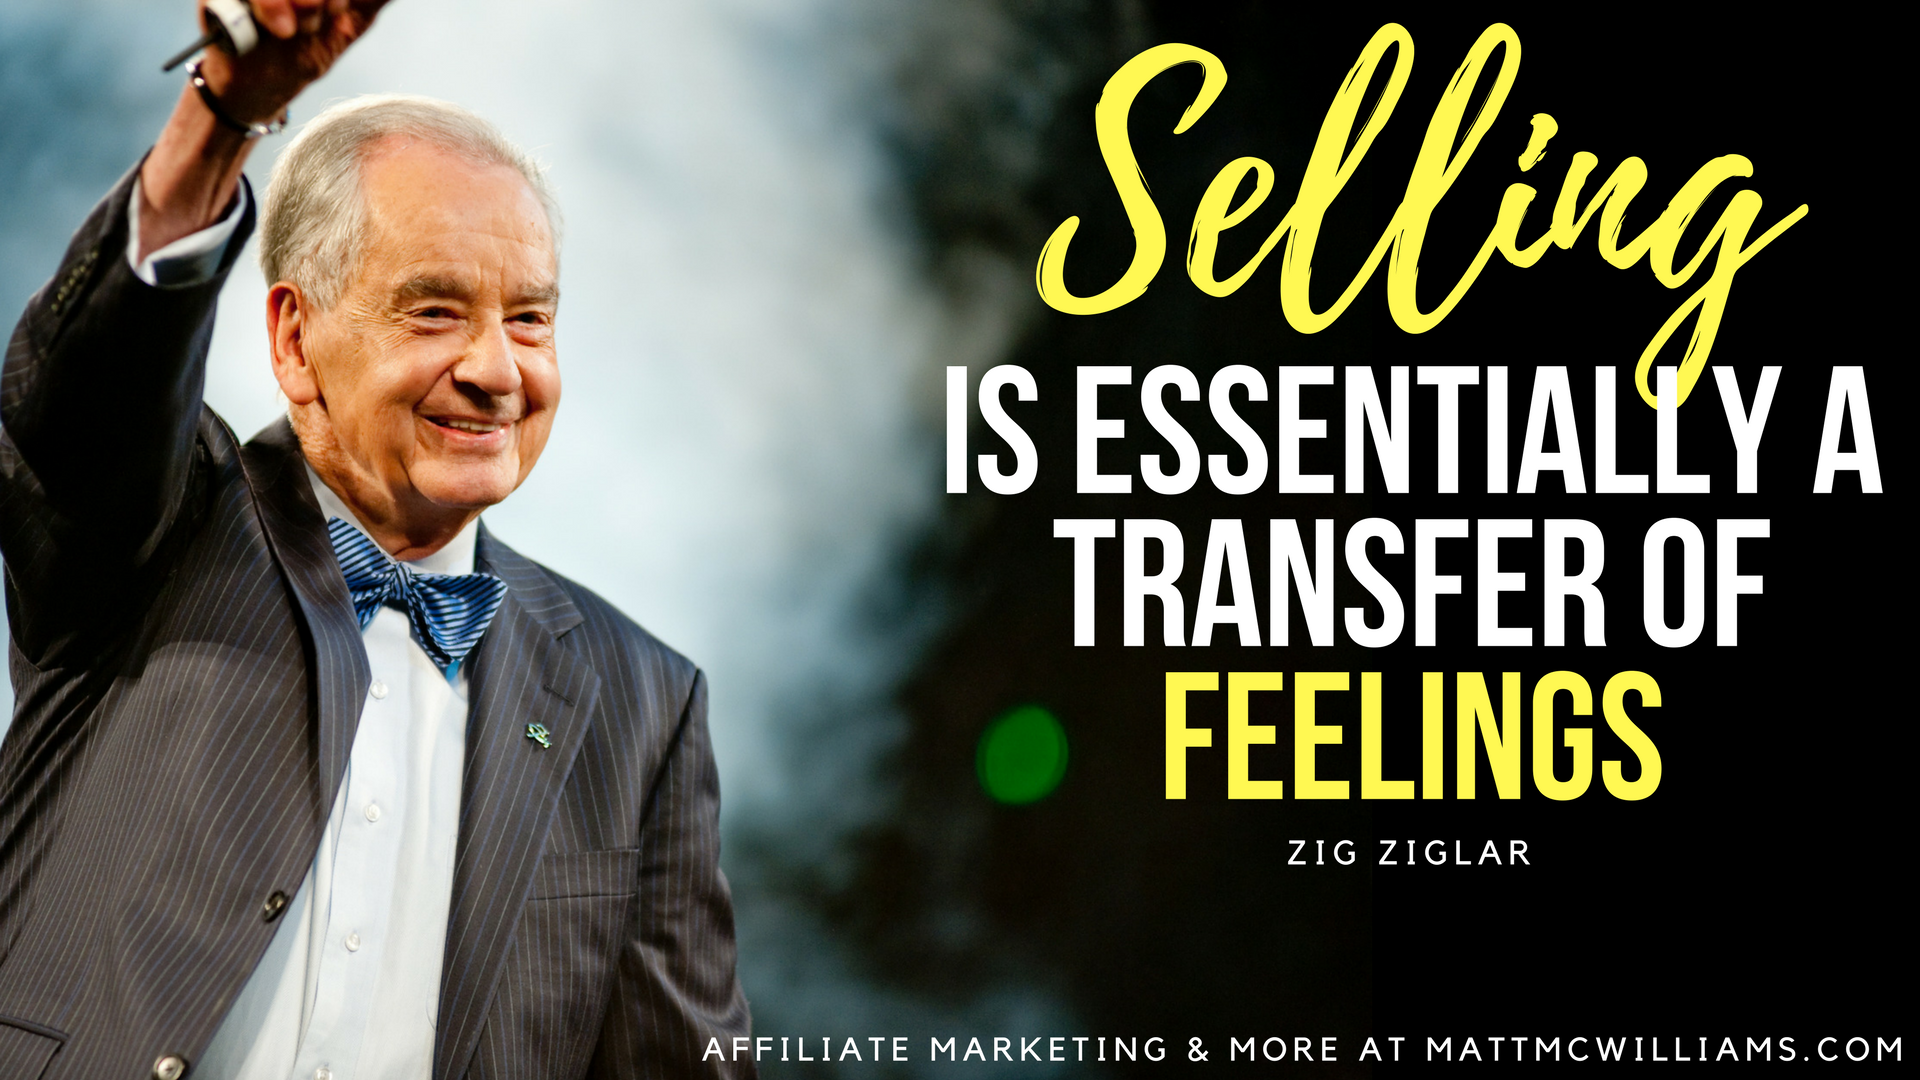 Selling Is Essentially A Transfer Of Feelings